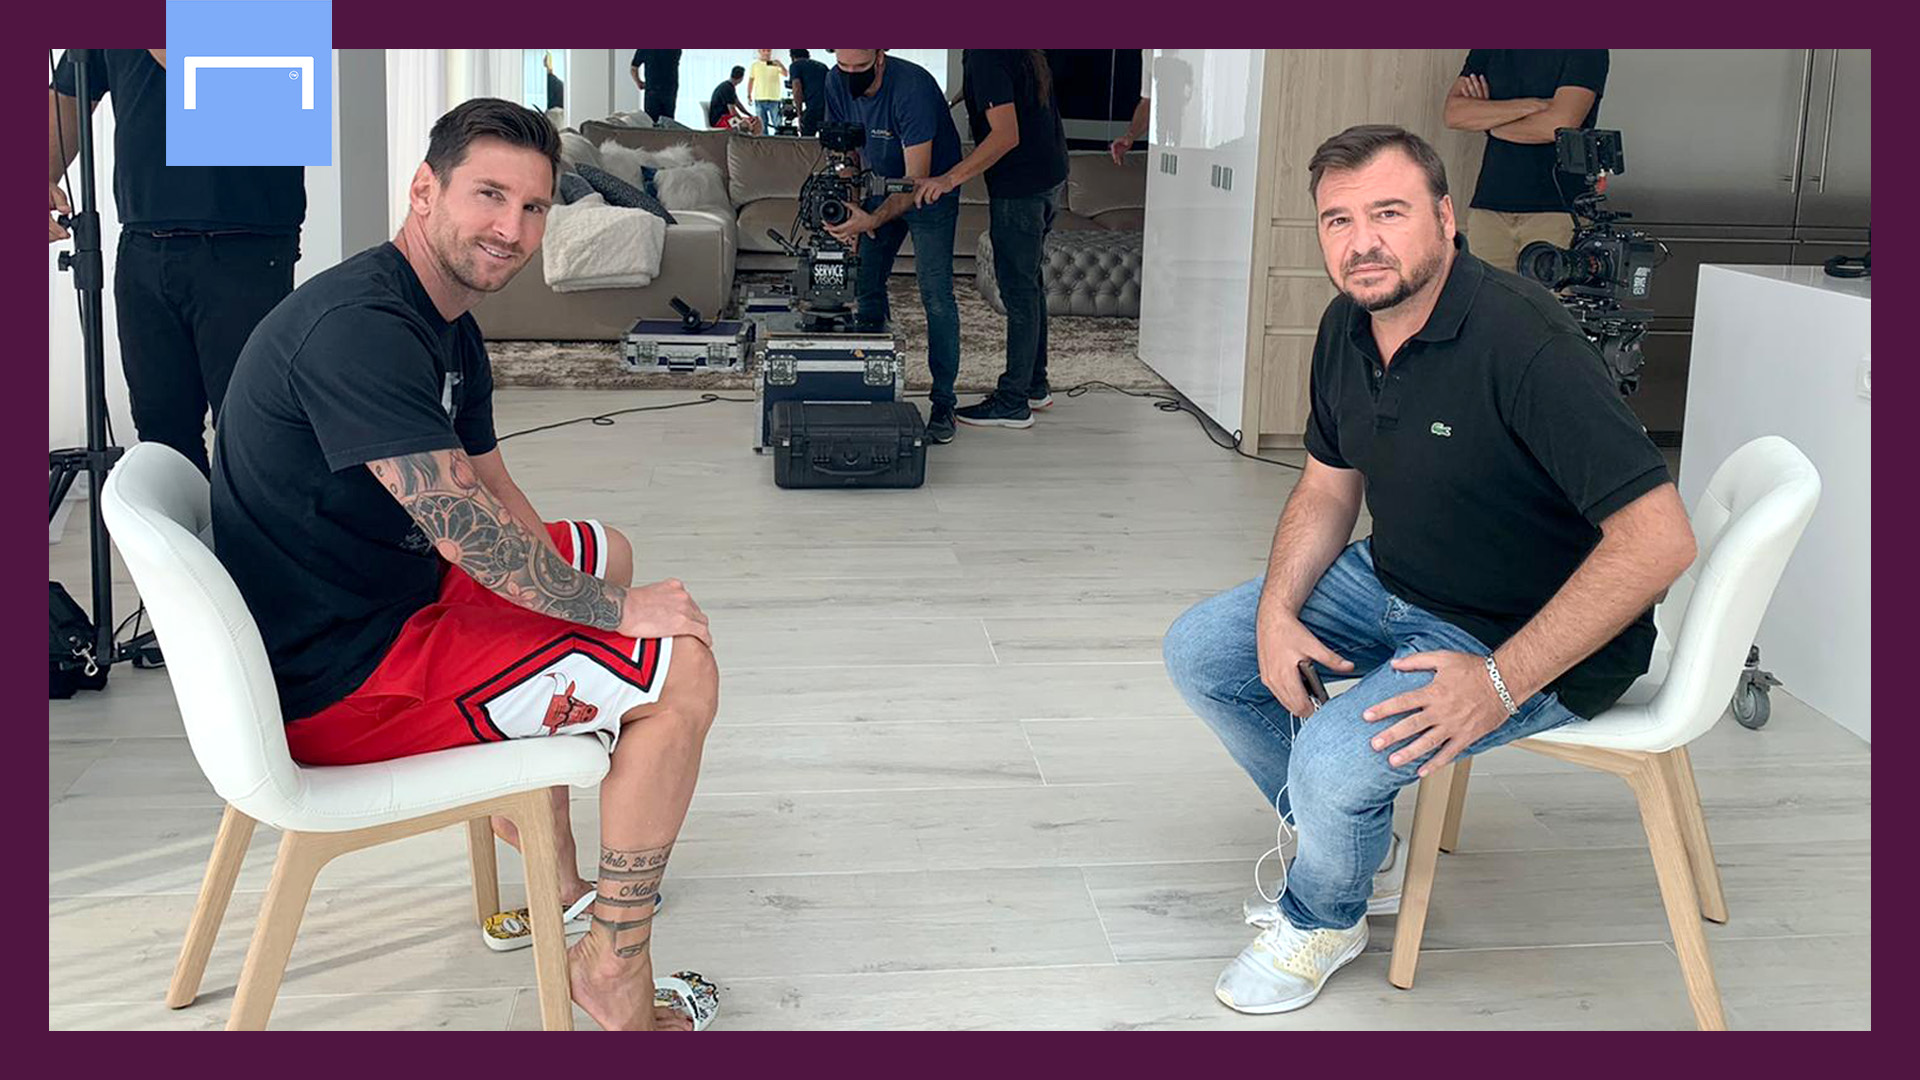 Video: Messi: Why I am staying at Barcelona despite heartbreak